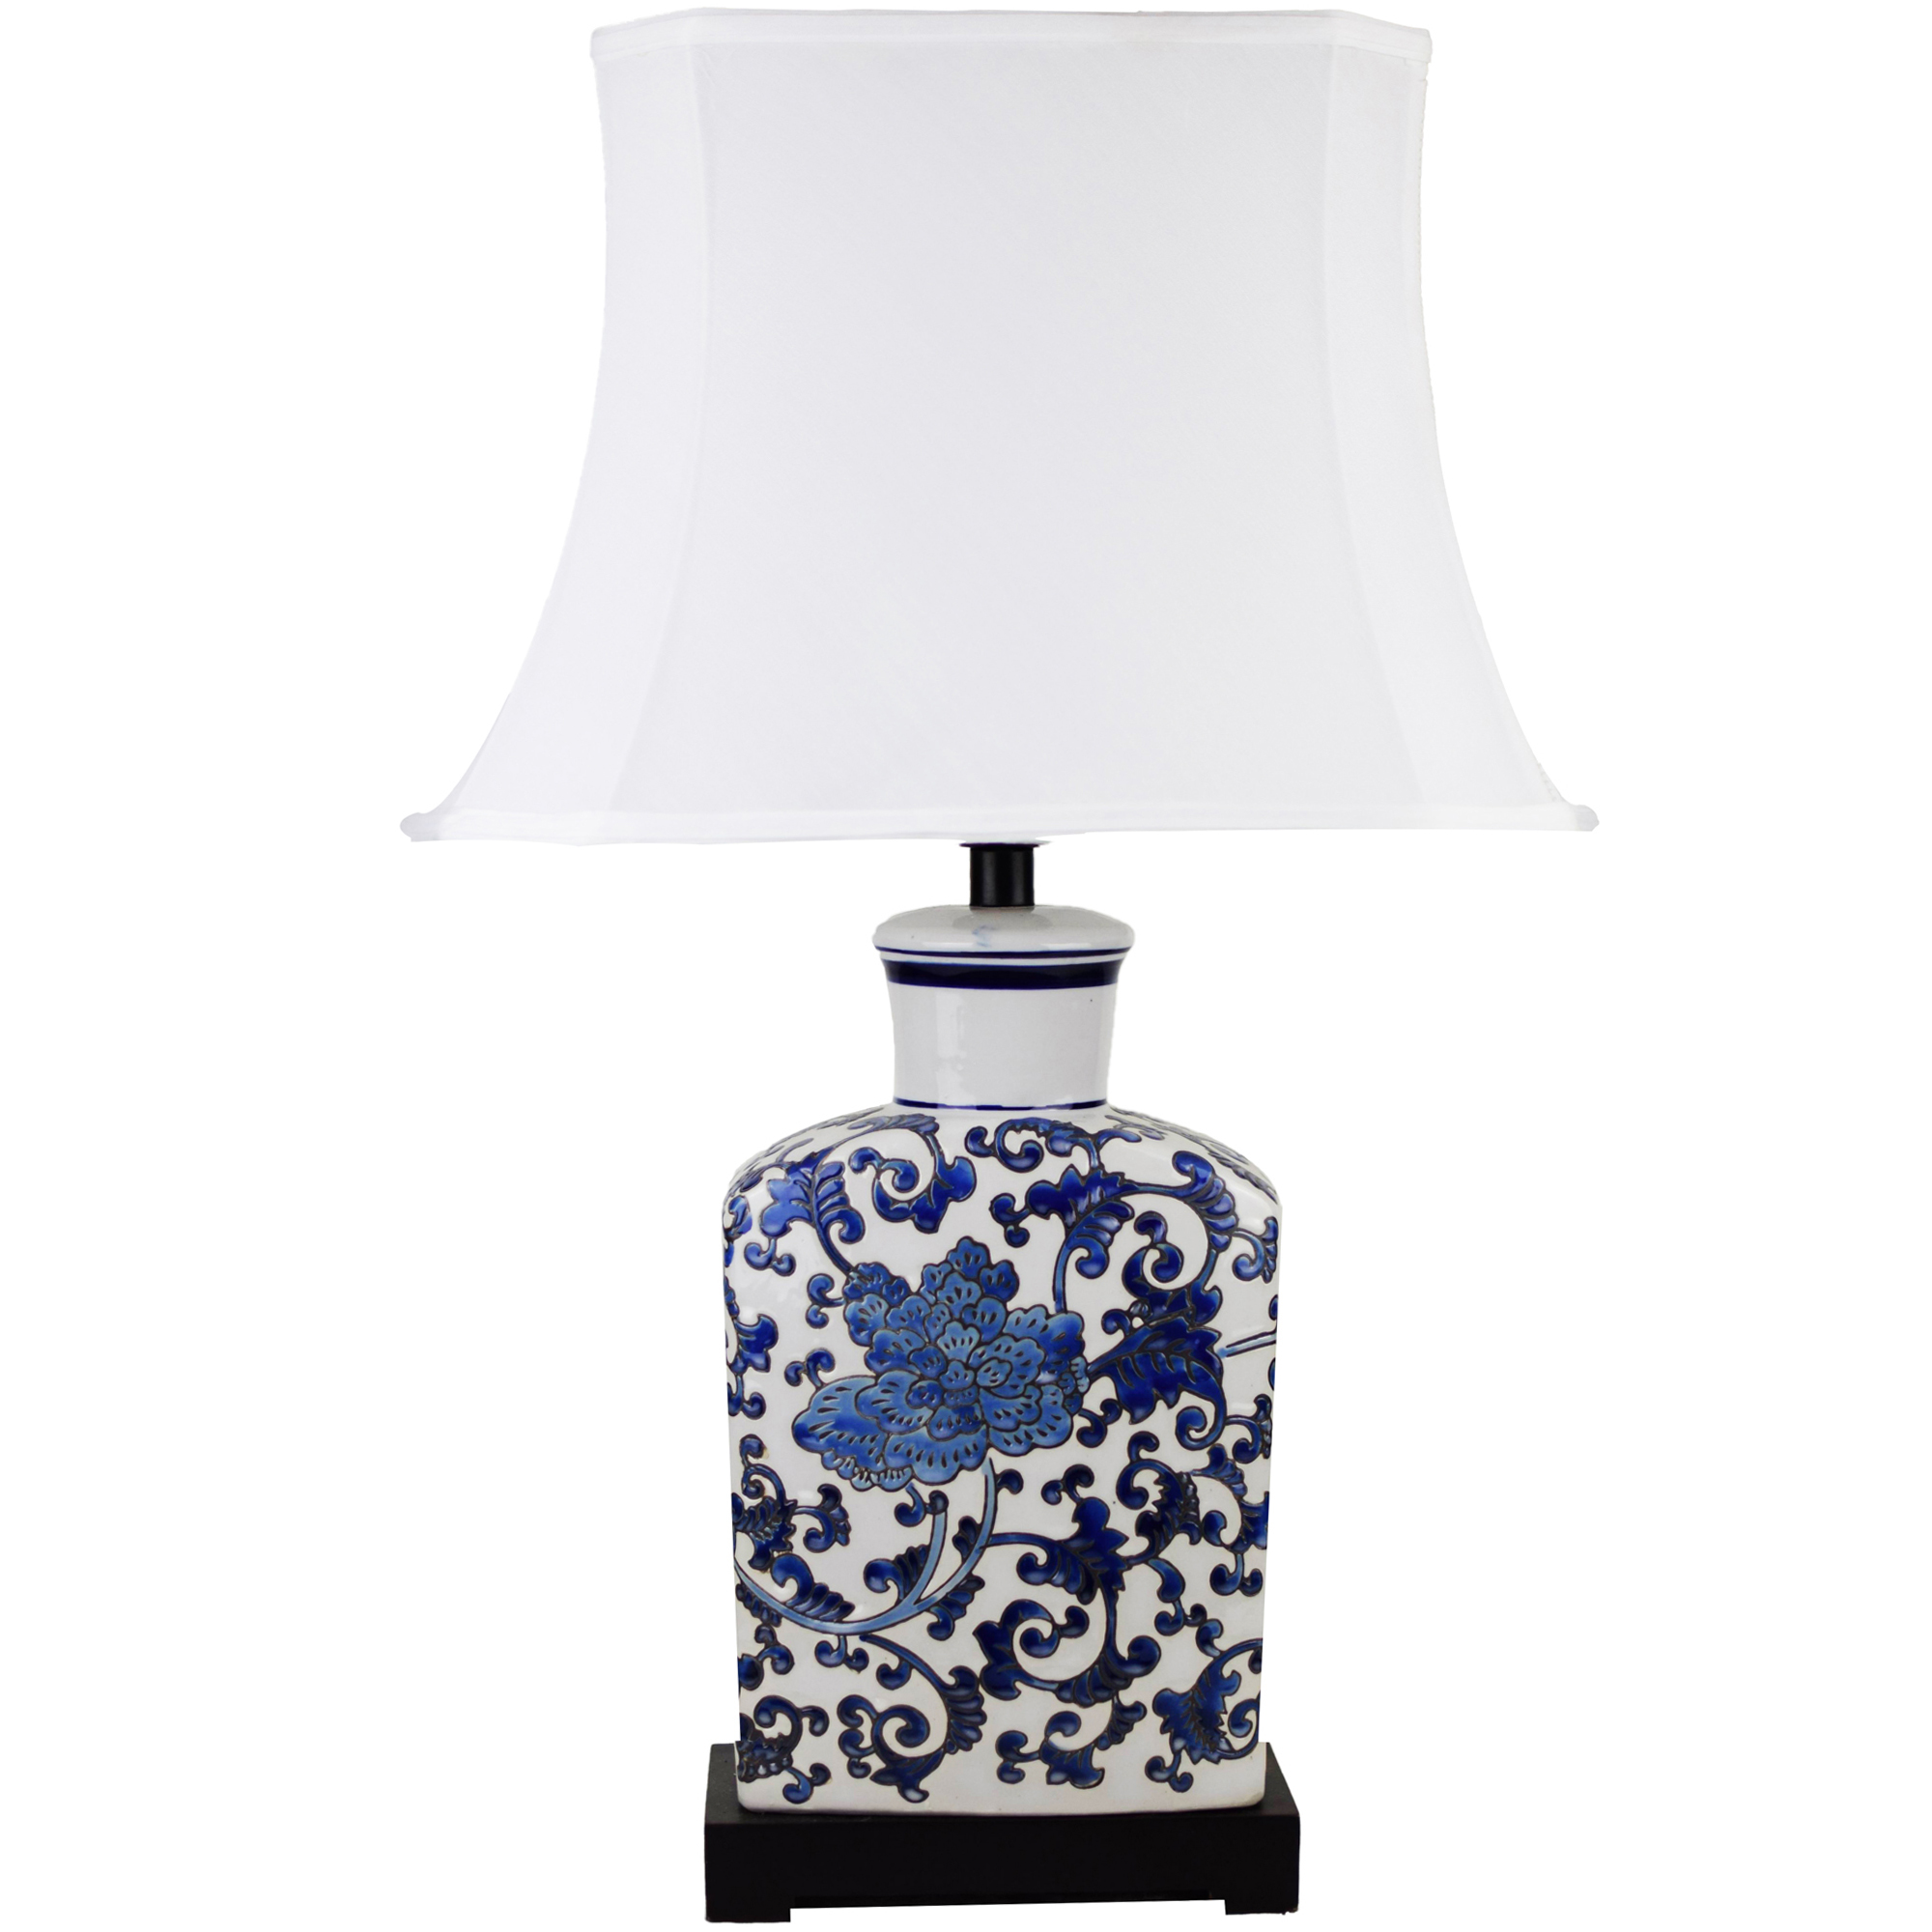 Picture of: Luminea White Blue Thiais Ceramic Table Lamp Reviews Temple Webster